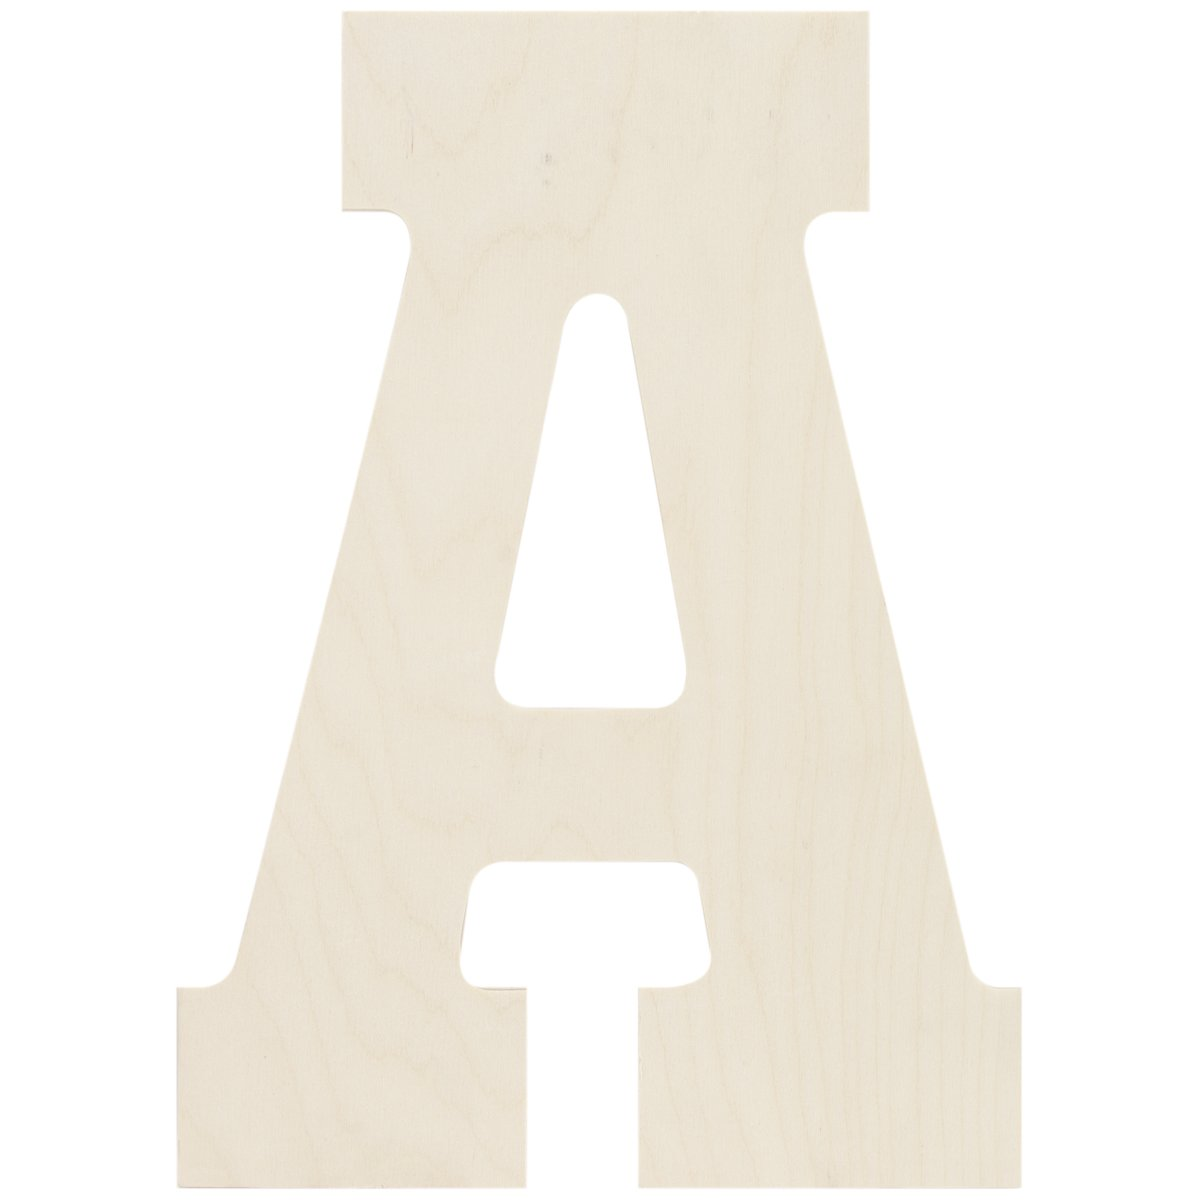 Baltic Birch Collegiate Font Letters /& Numbers 13.5-Letter A